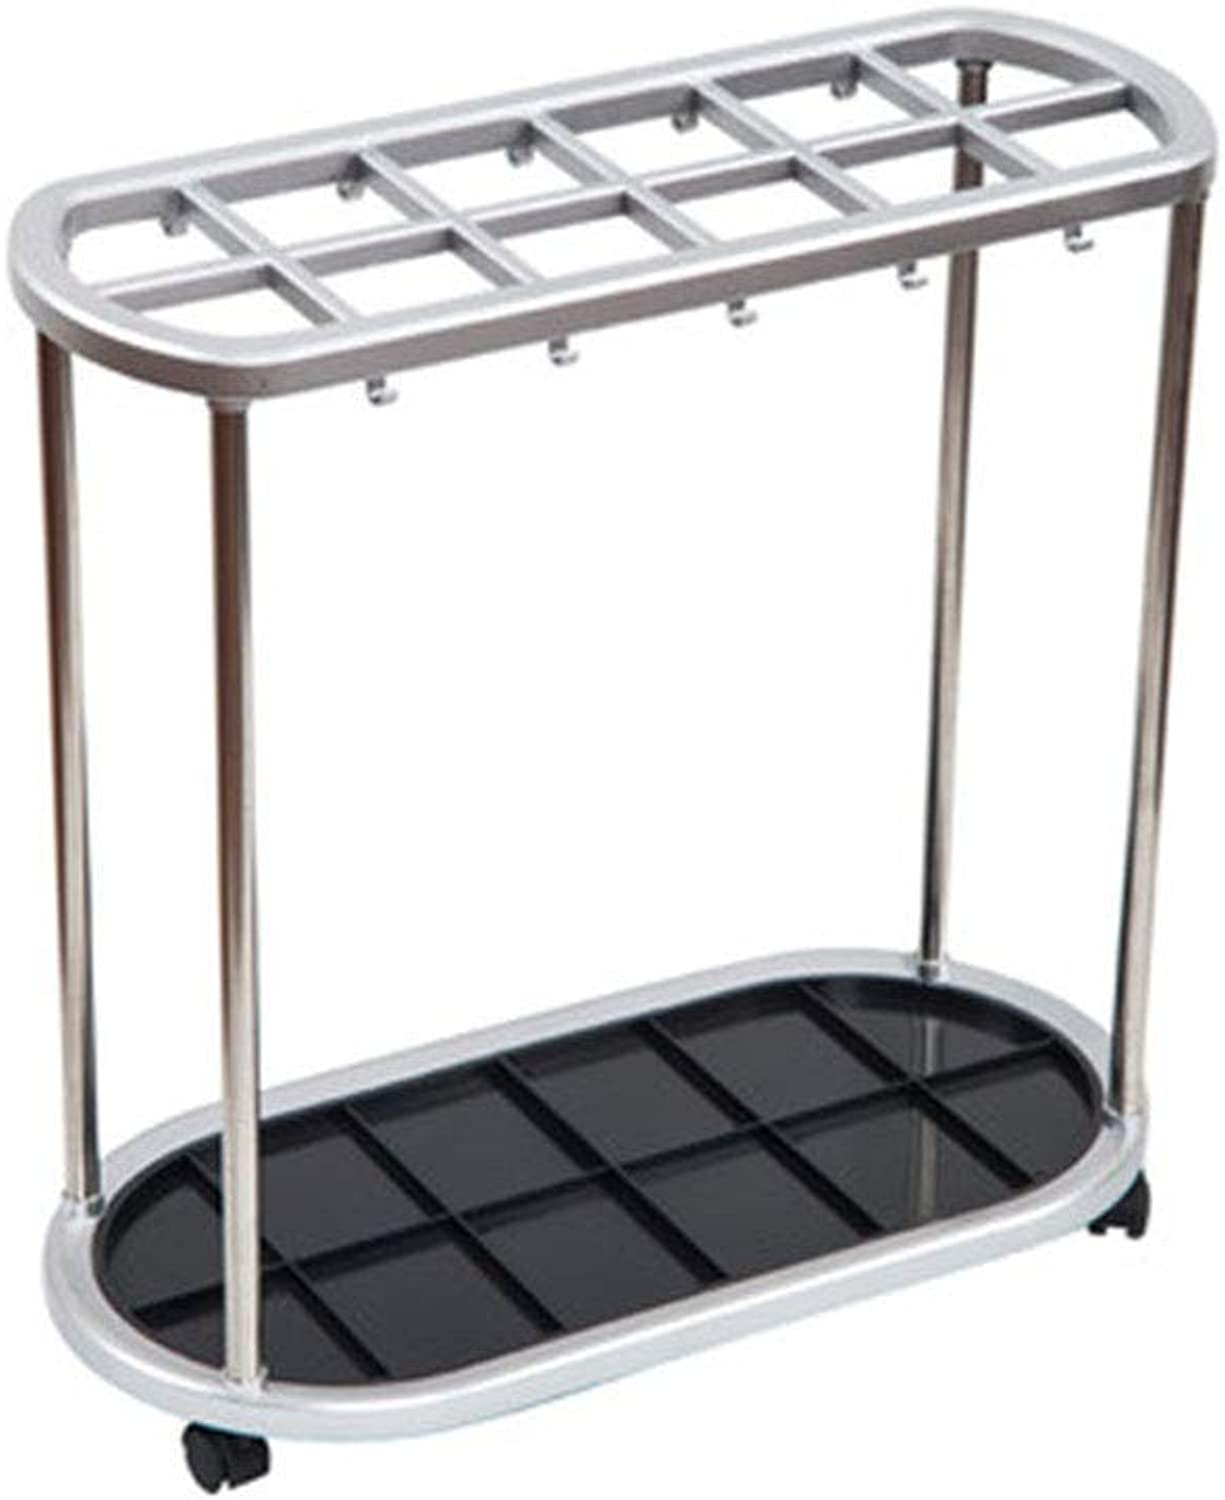 Umbrella Storage Rack 6 Holes 12 Holes 21 Holes Umbrella Stand Umbrella Bucket Folding Umbrella Straight Umbrella Umbrella Stand